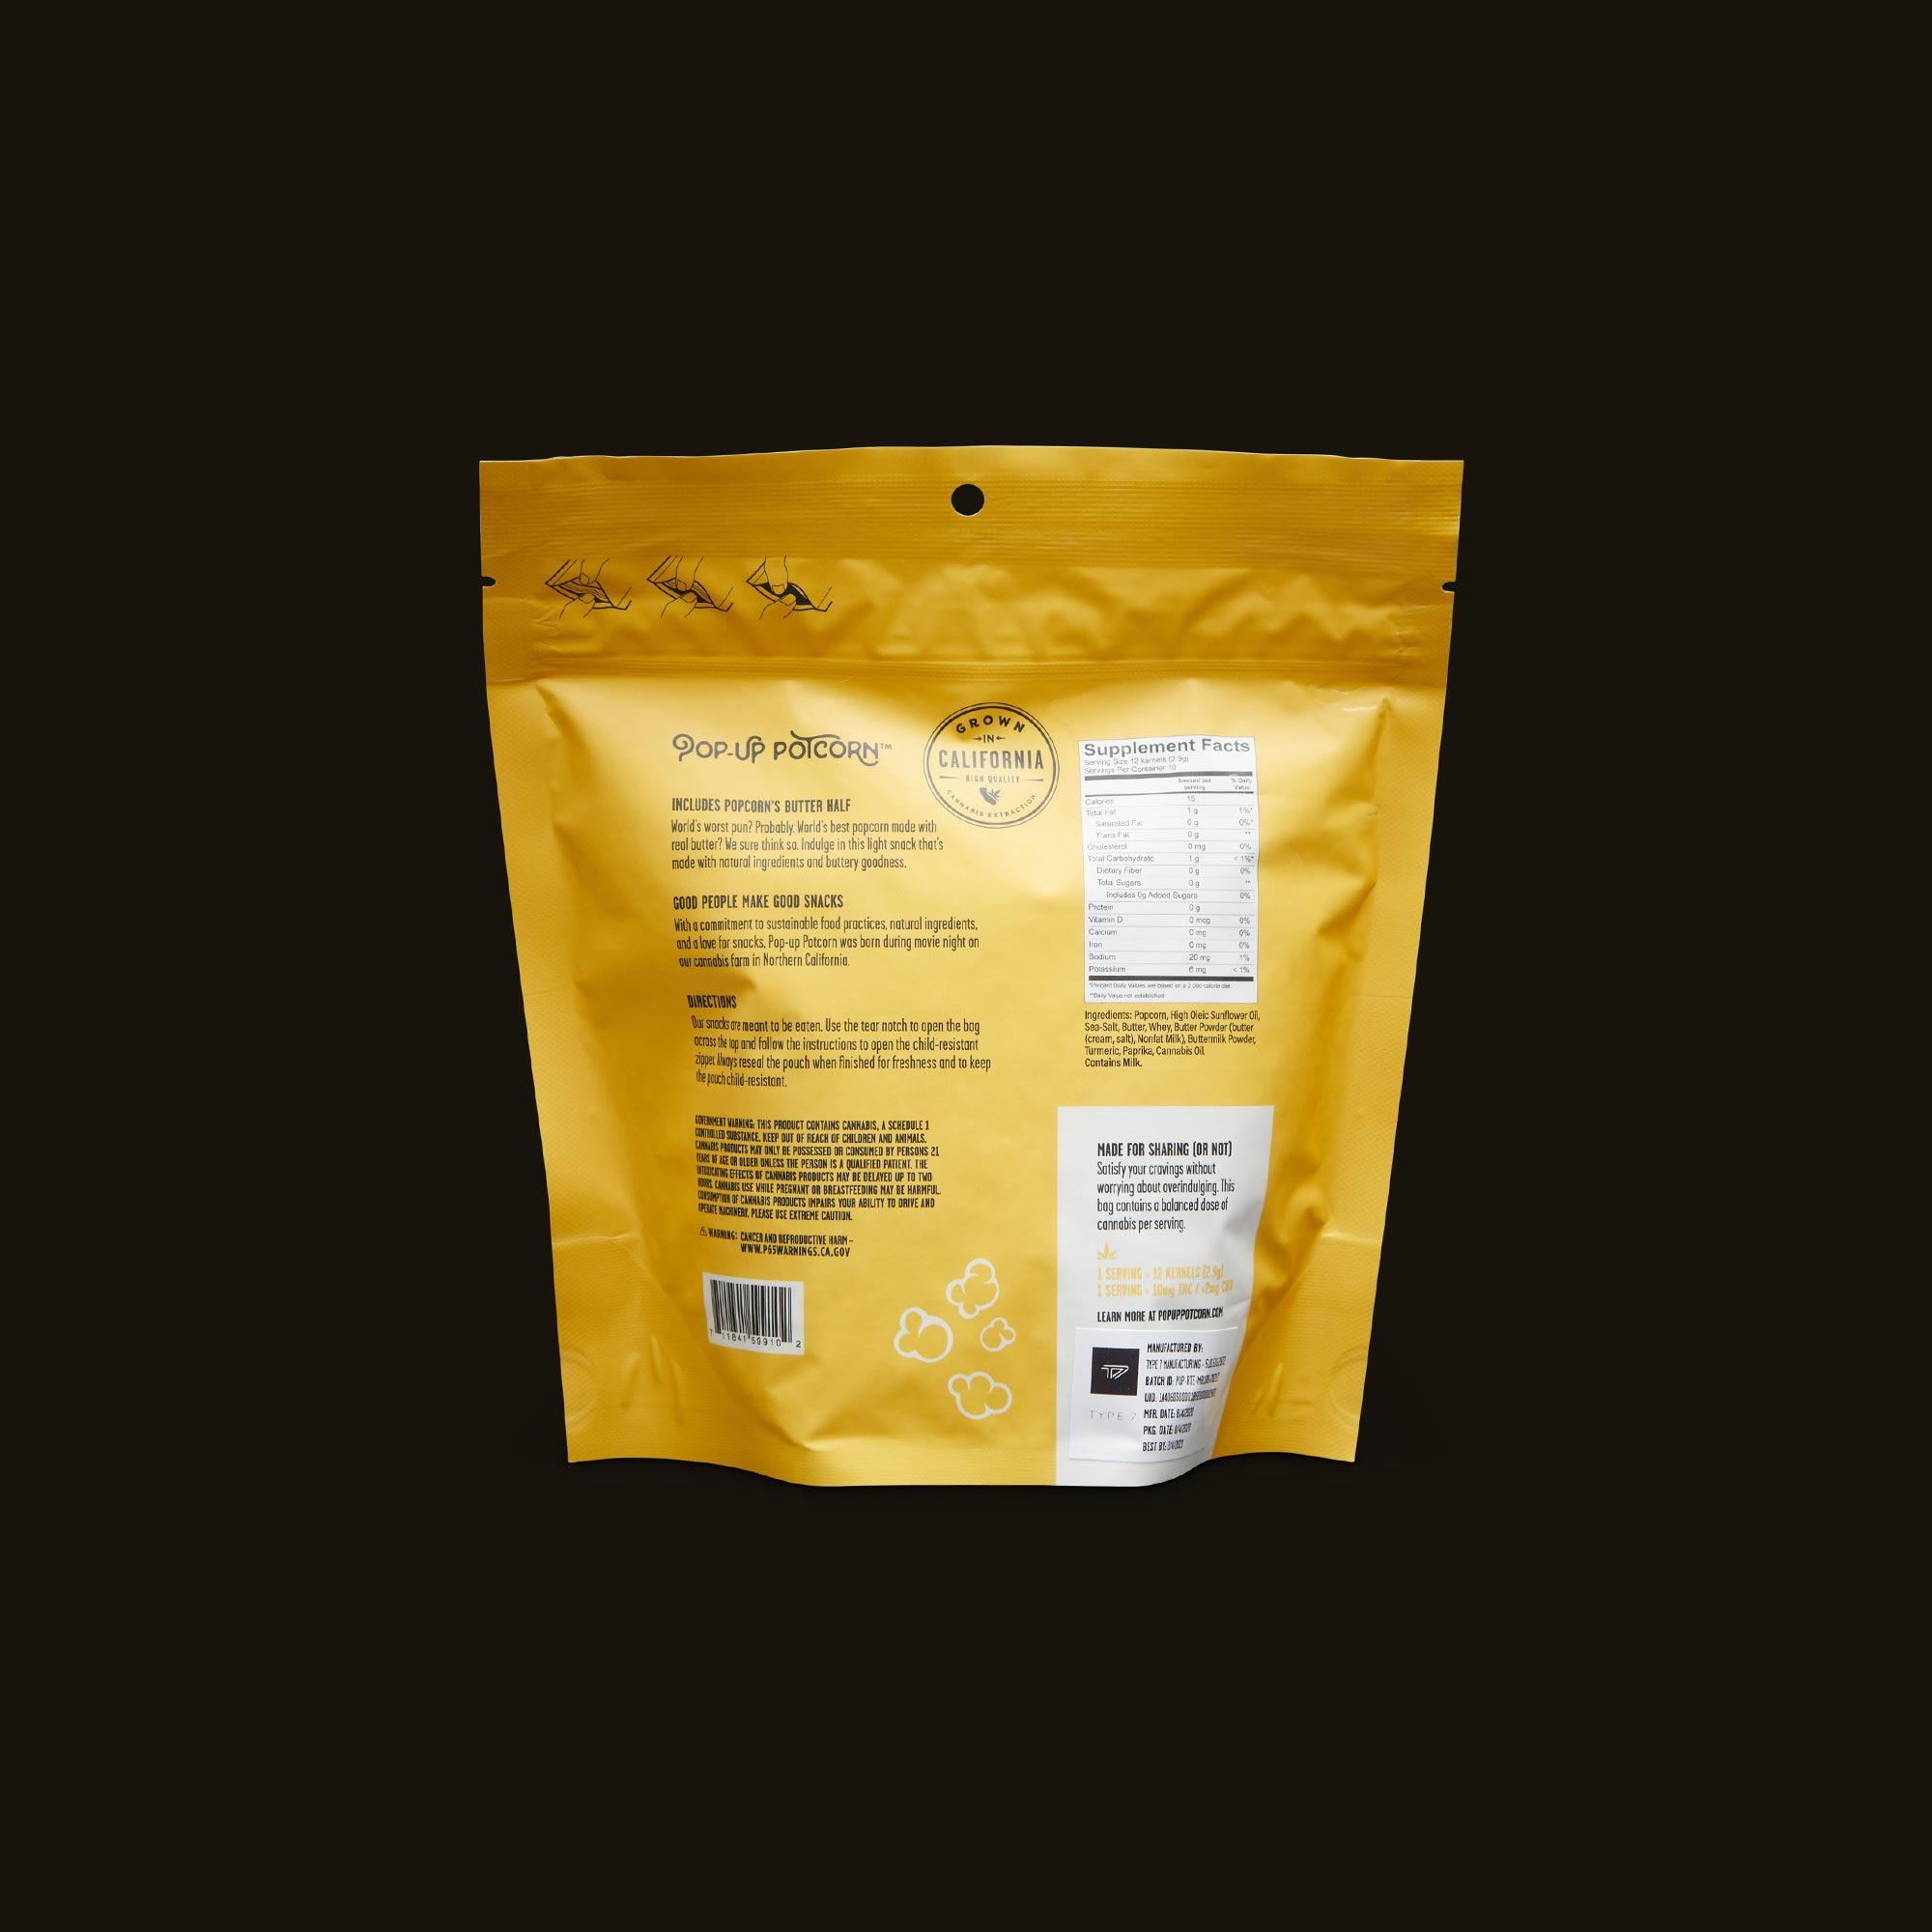 Pop-Up Potcorn Movie Theater Butter Popcorn 10:1 - 10 Servings Nutrition Facts